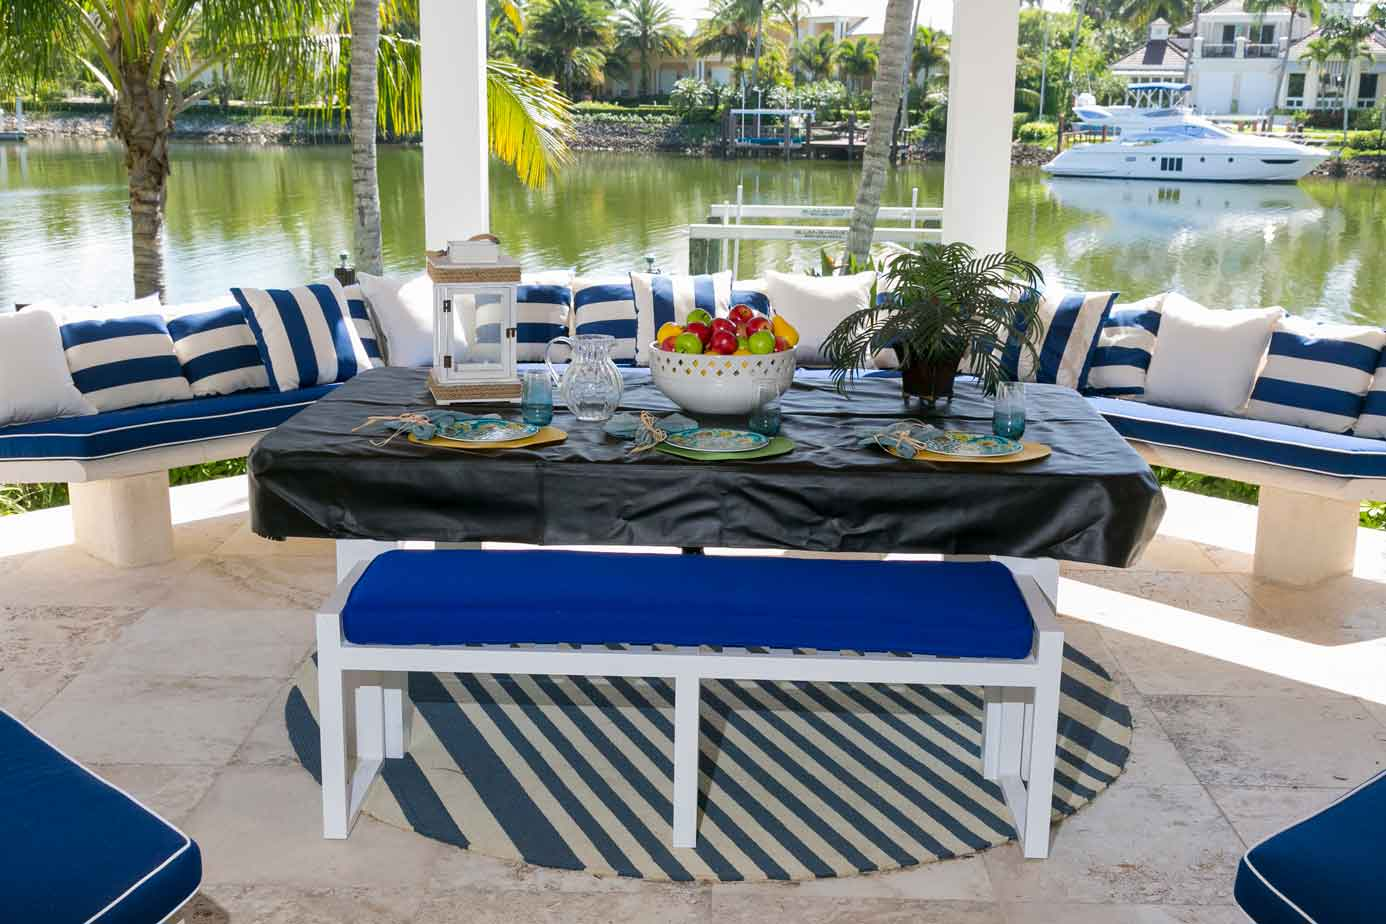 Oasis custom outdoor pool table with soft top dining conversion by R&R Outdoors All Weather Billiards